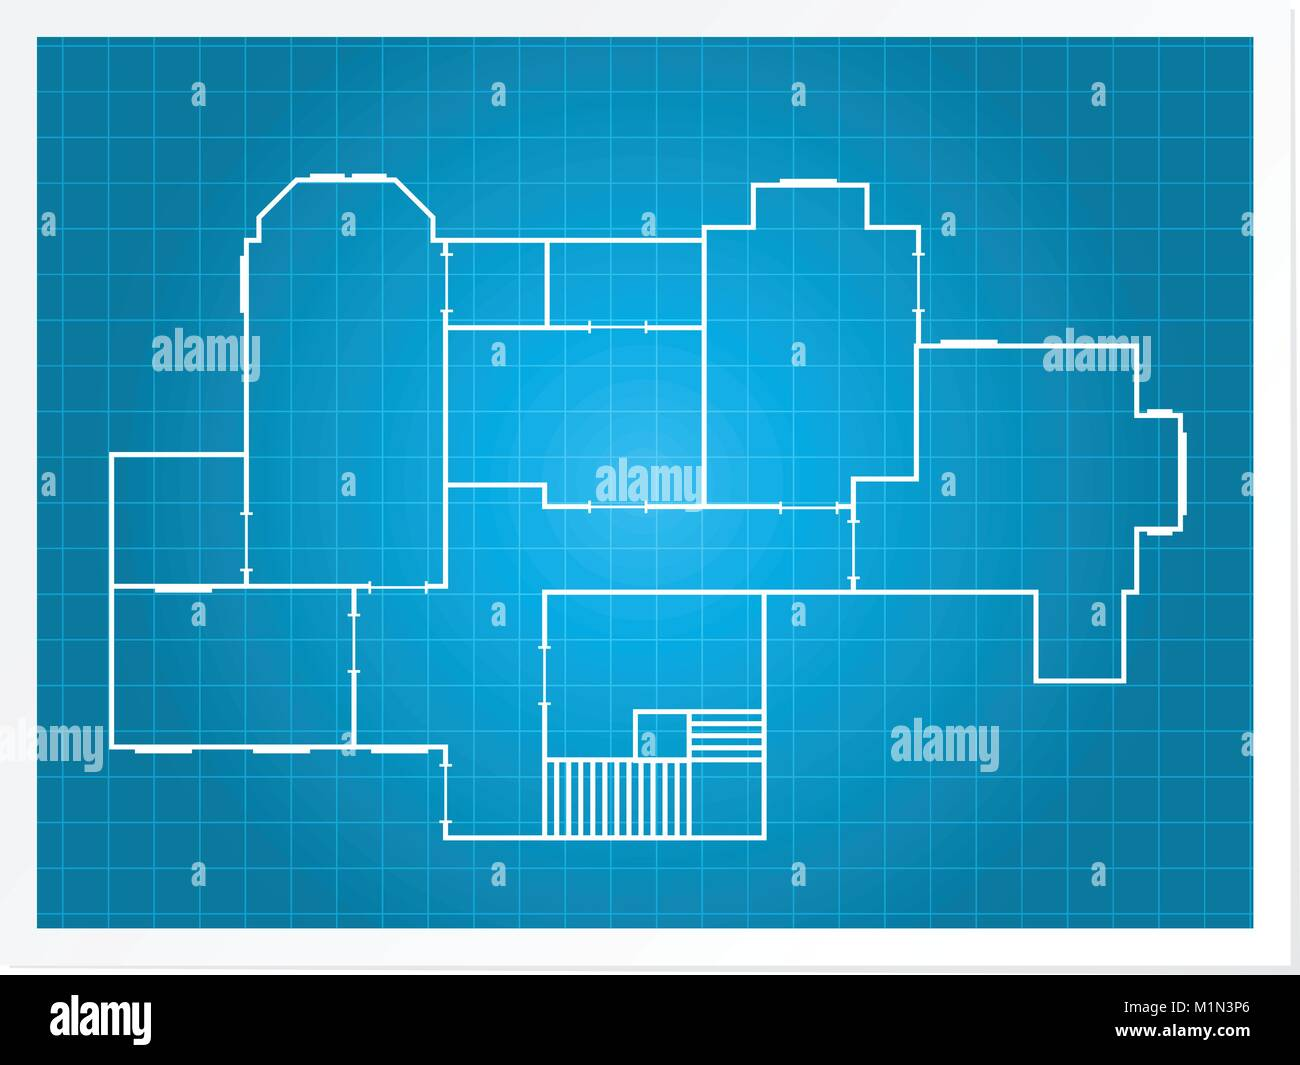 Architectural background blueprint plan of a layout of building architectural background blueprint plan of a layout of building malvernweather